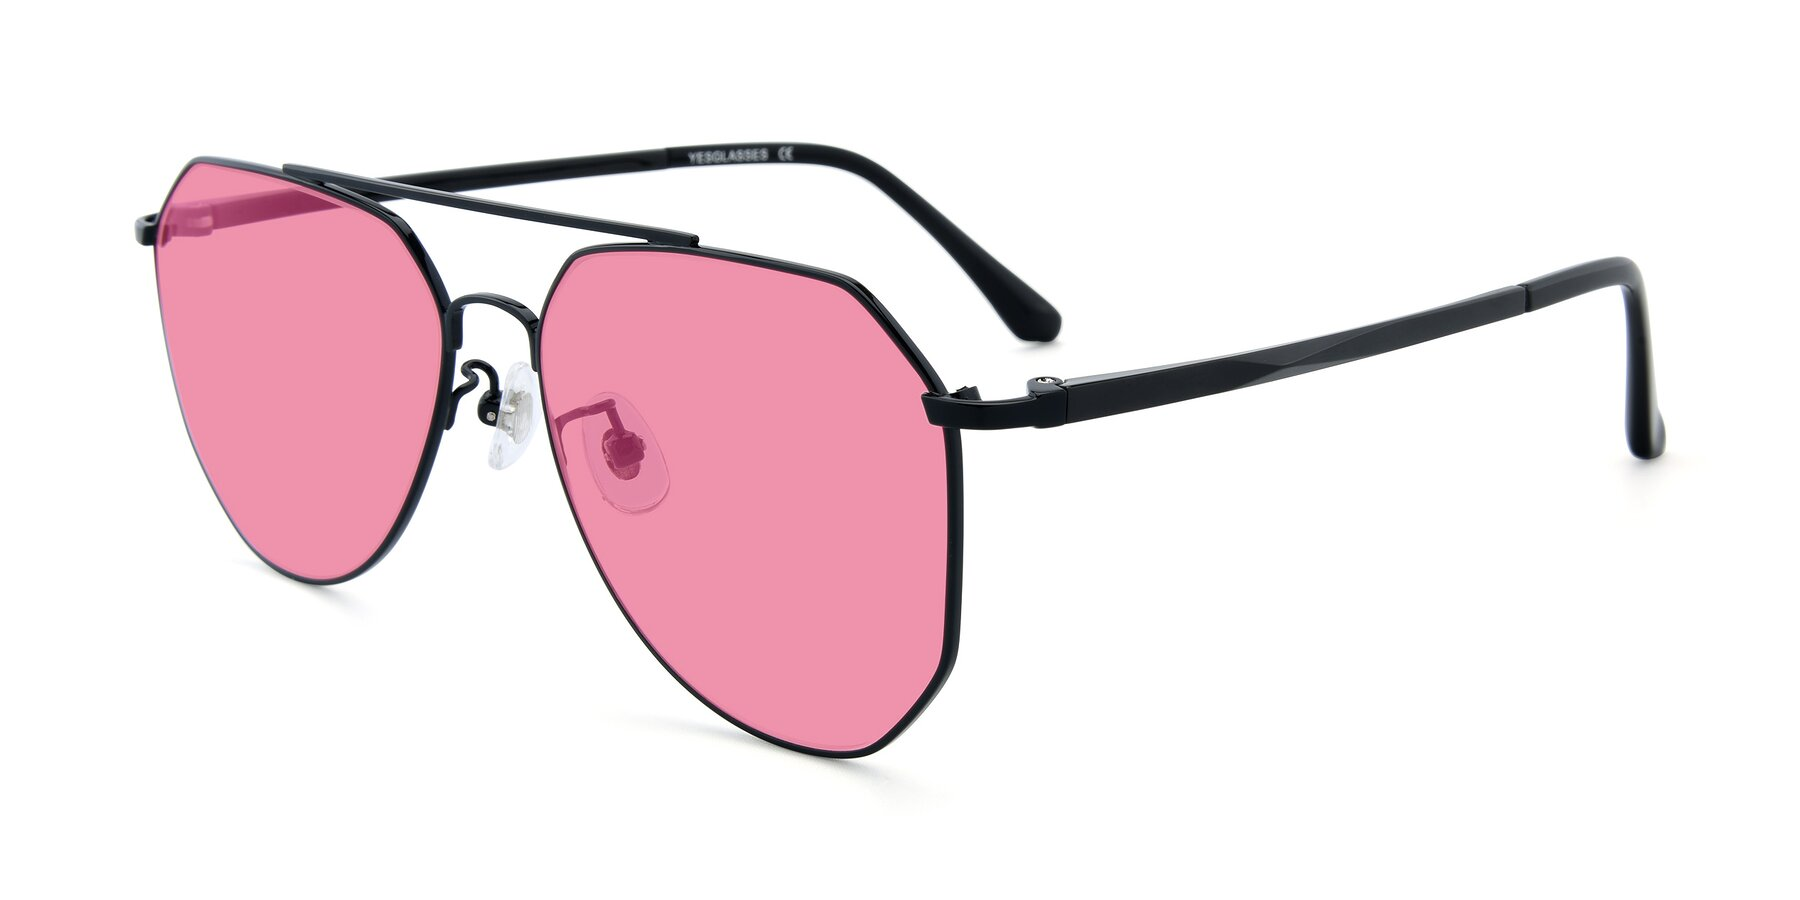 Angle of XC-8040 in Black with Pink Tinted Lenses